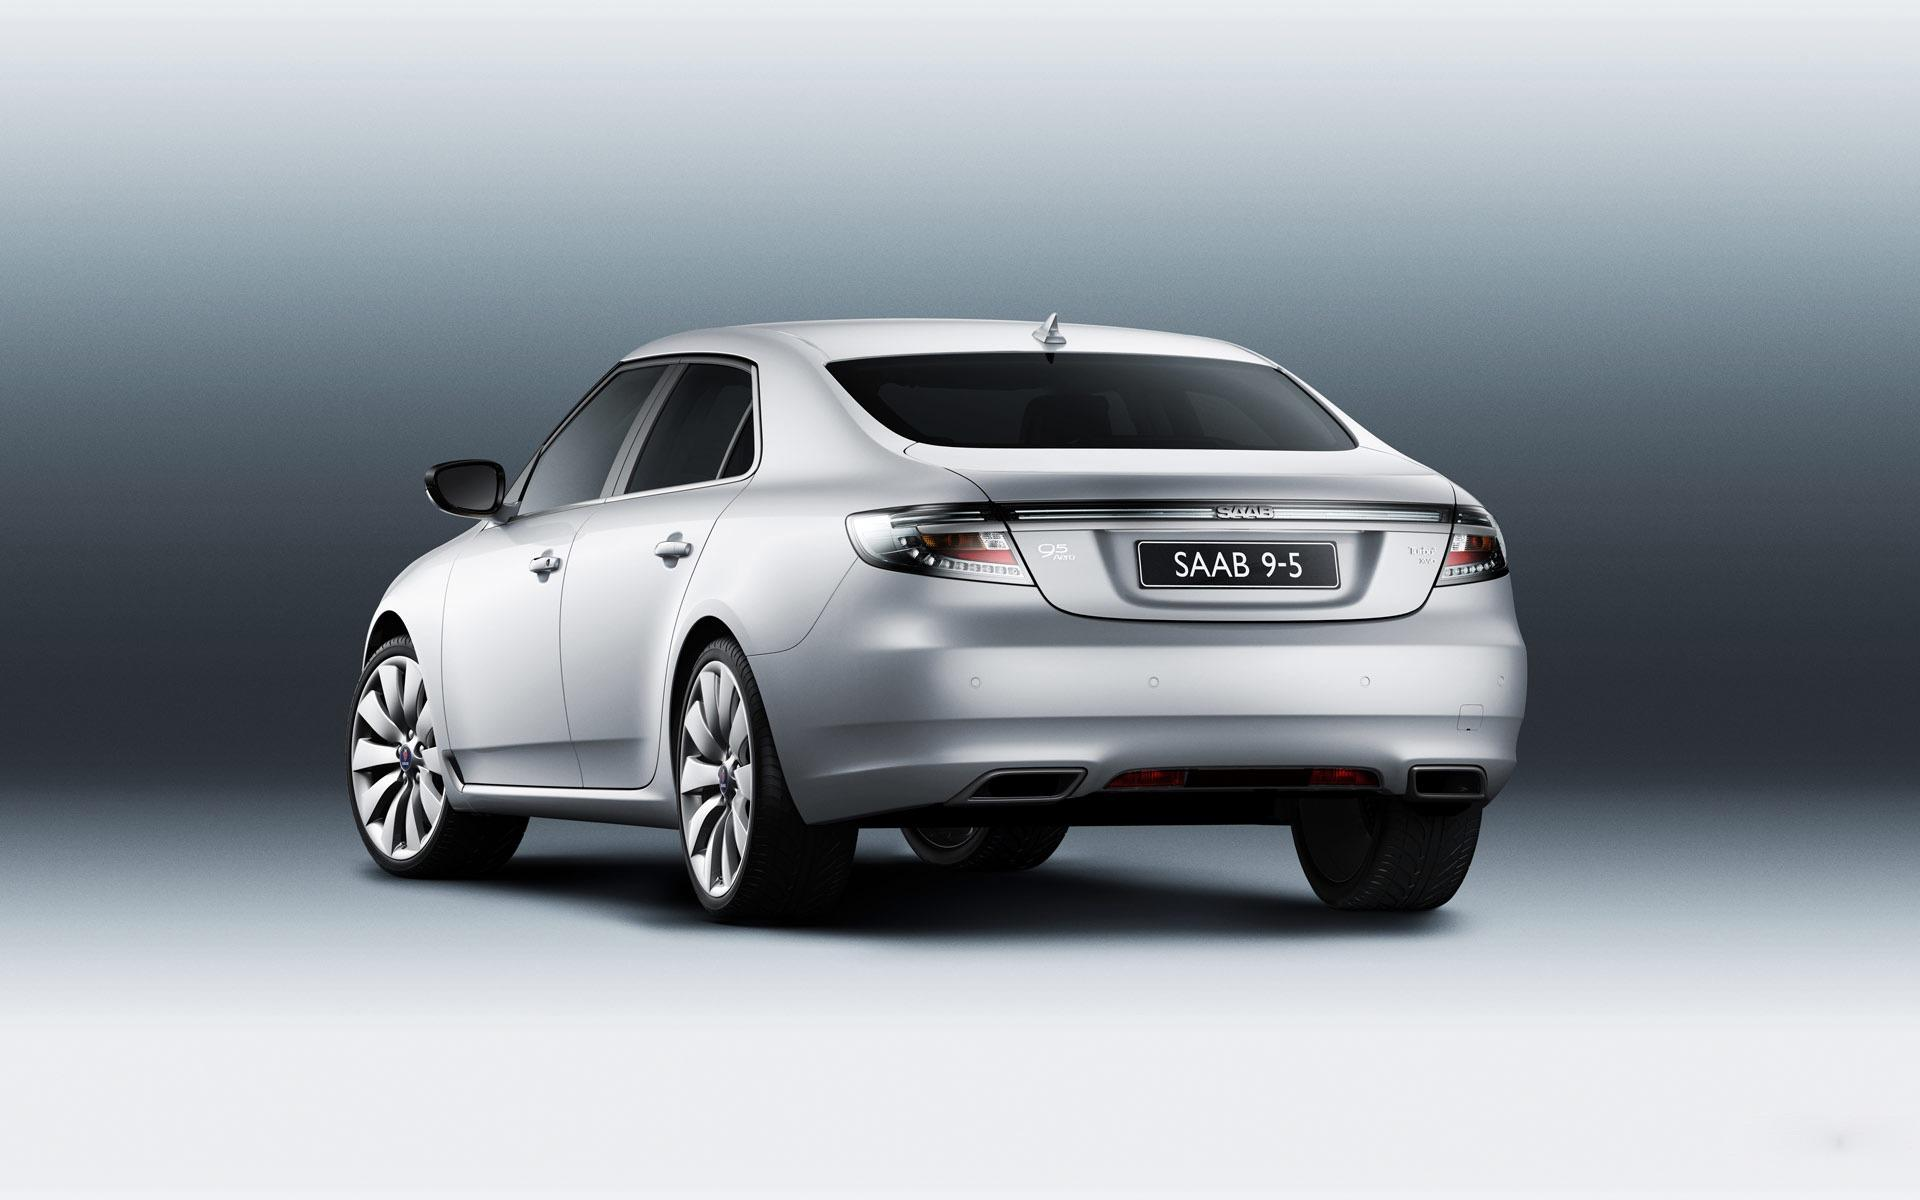 Saab 9 5 Wallpapers Saab Cars Wallpapers in jpg format for free download